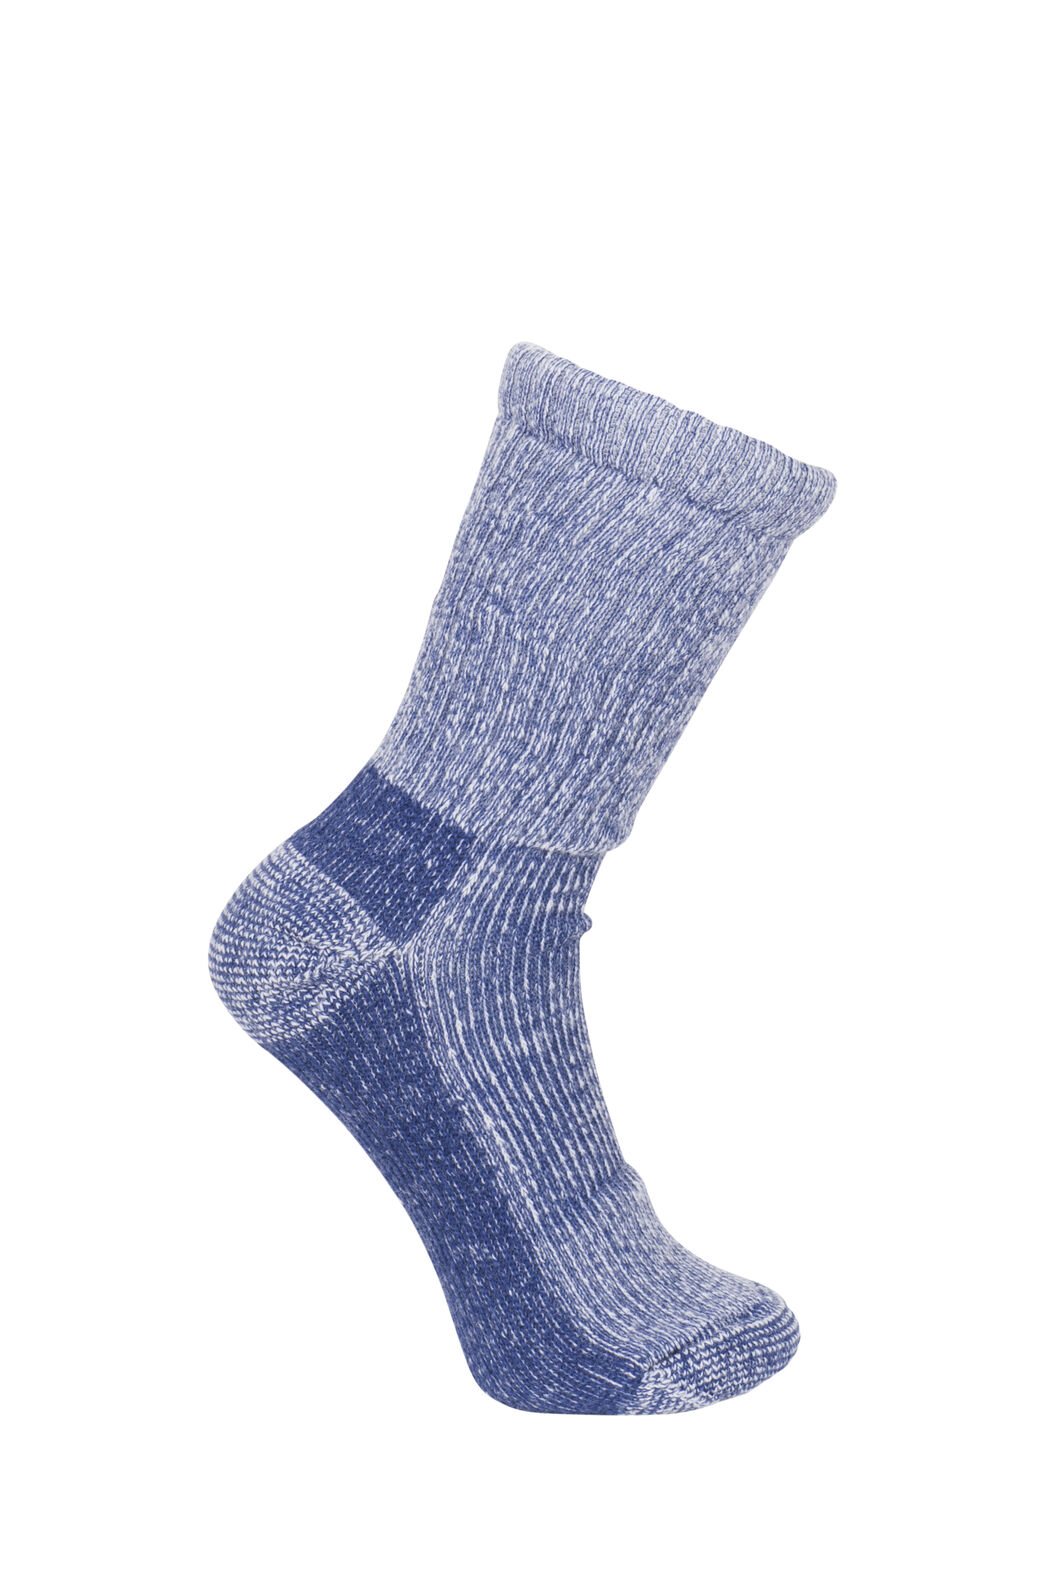 Macpac Winter Hiker Socks — Kids', Denim, hi-res